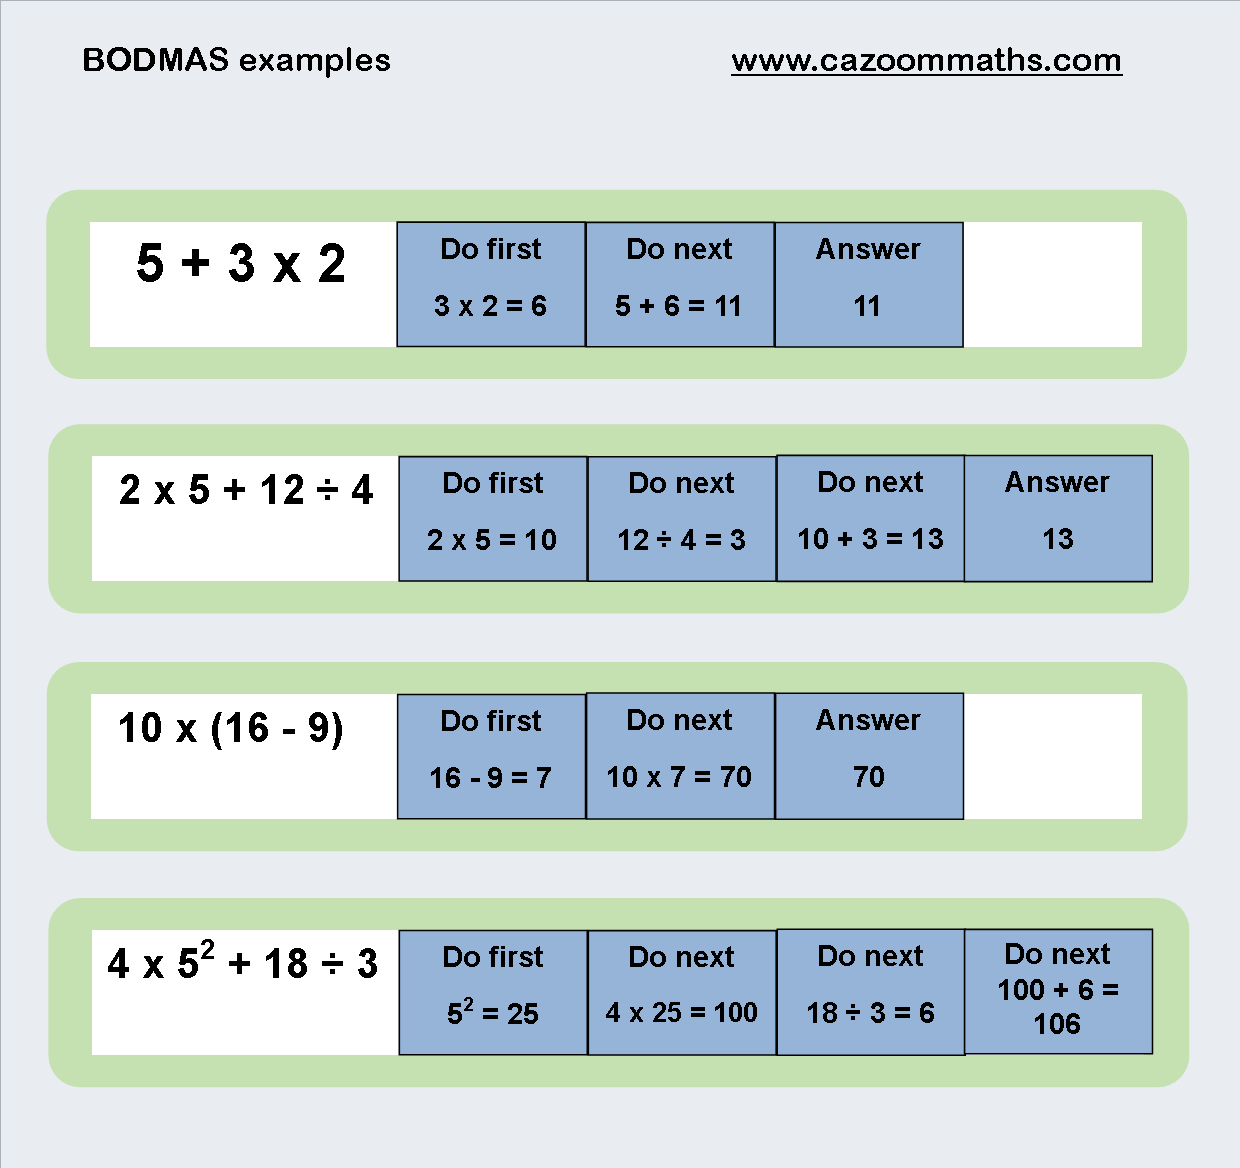 BODMAS examples | Cazoom Maths Worksheets